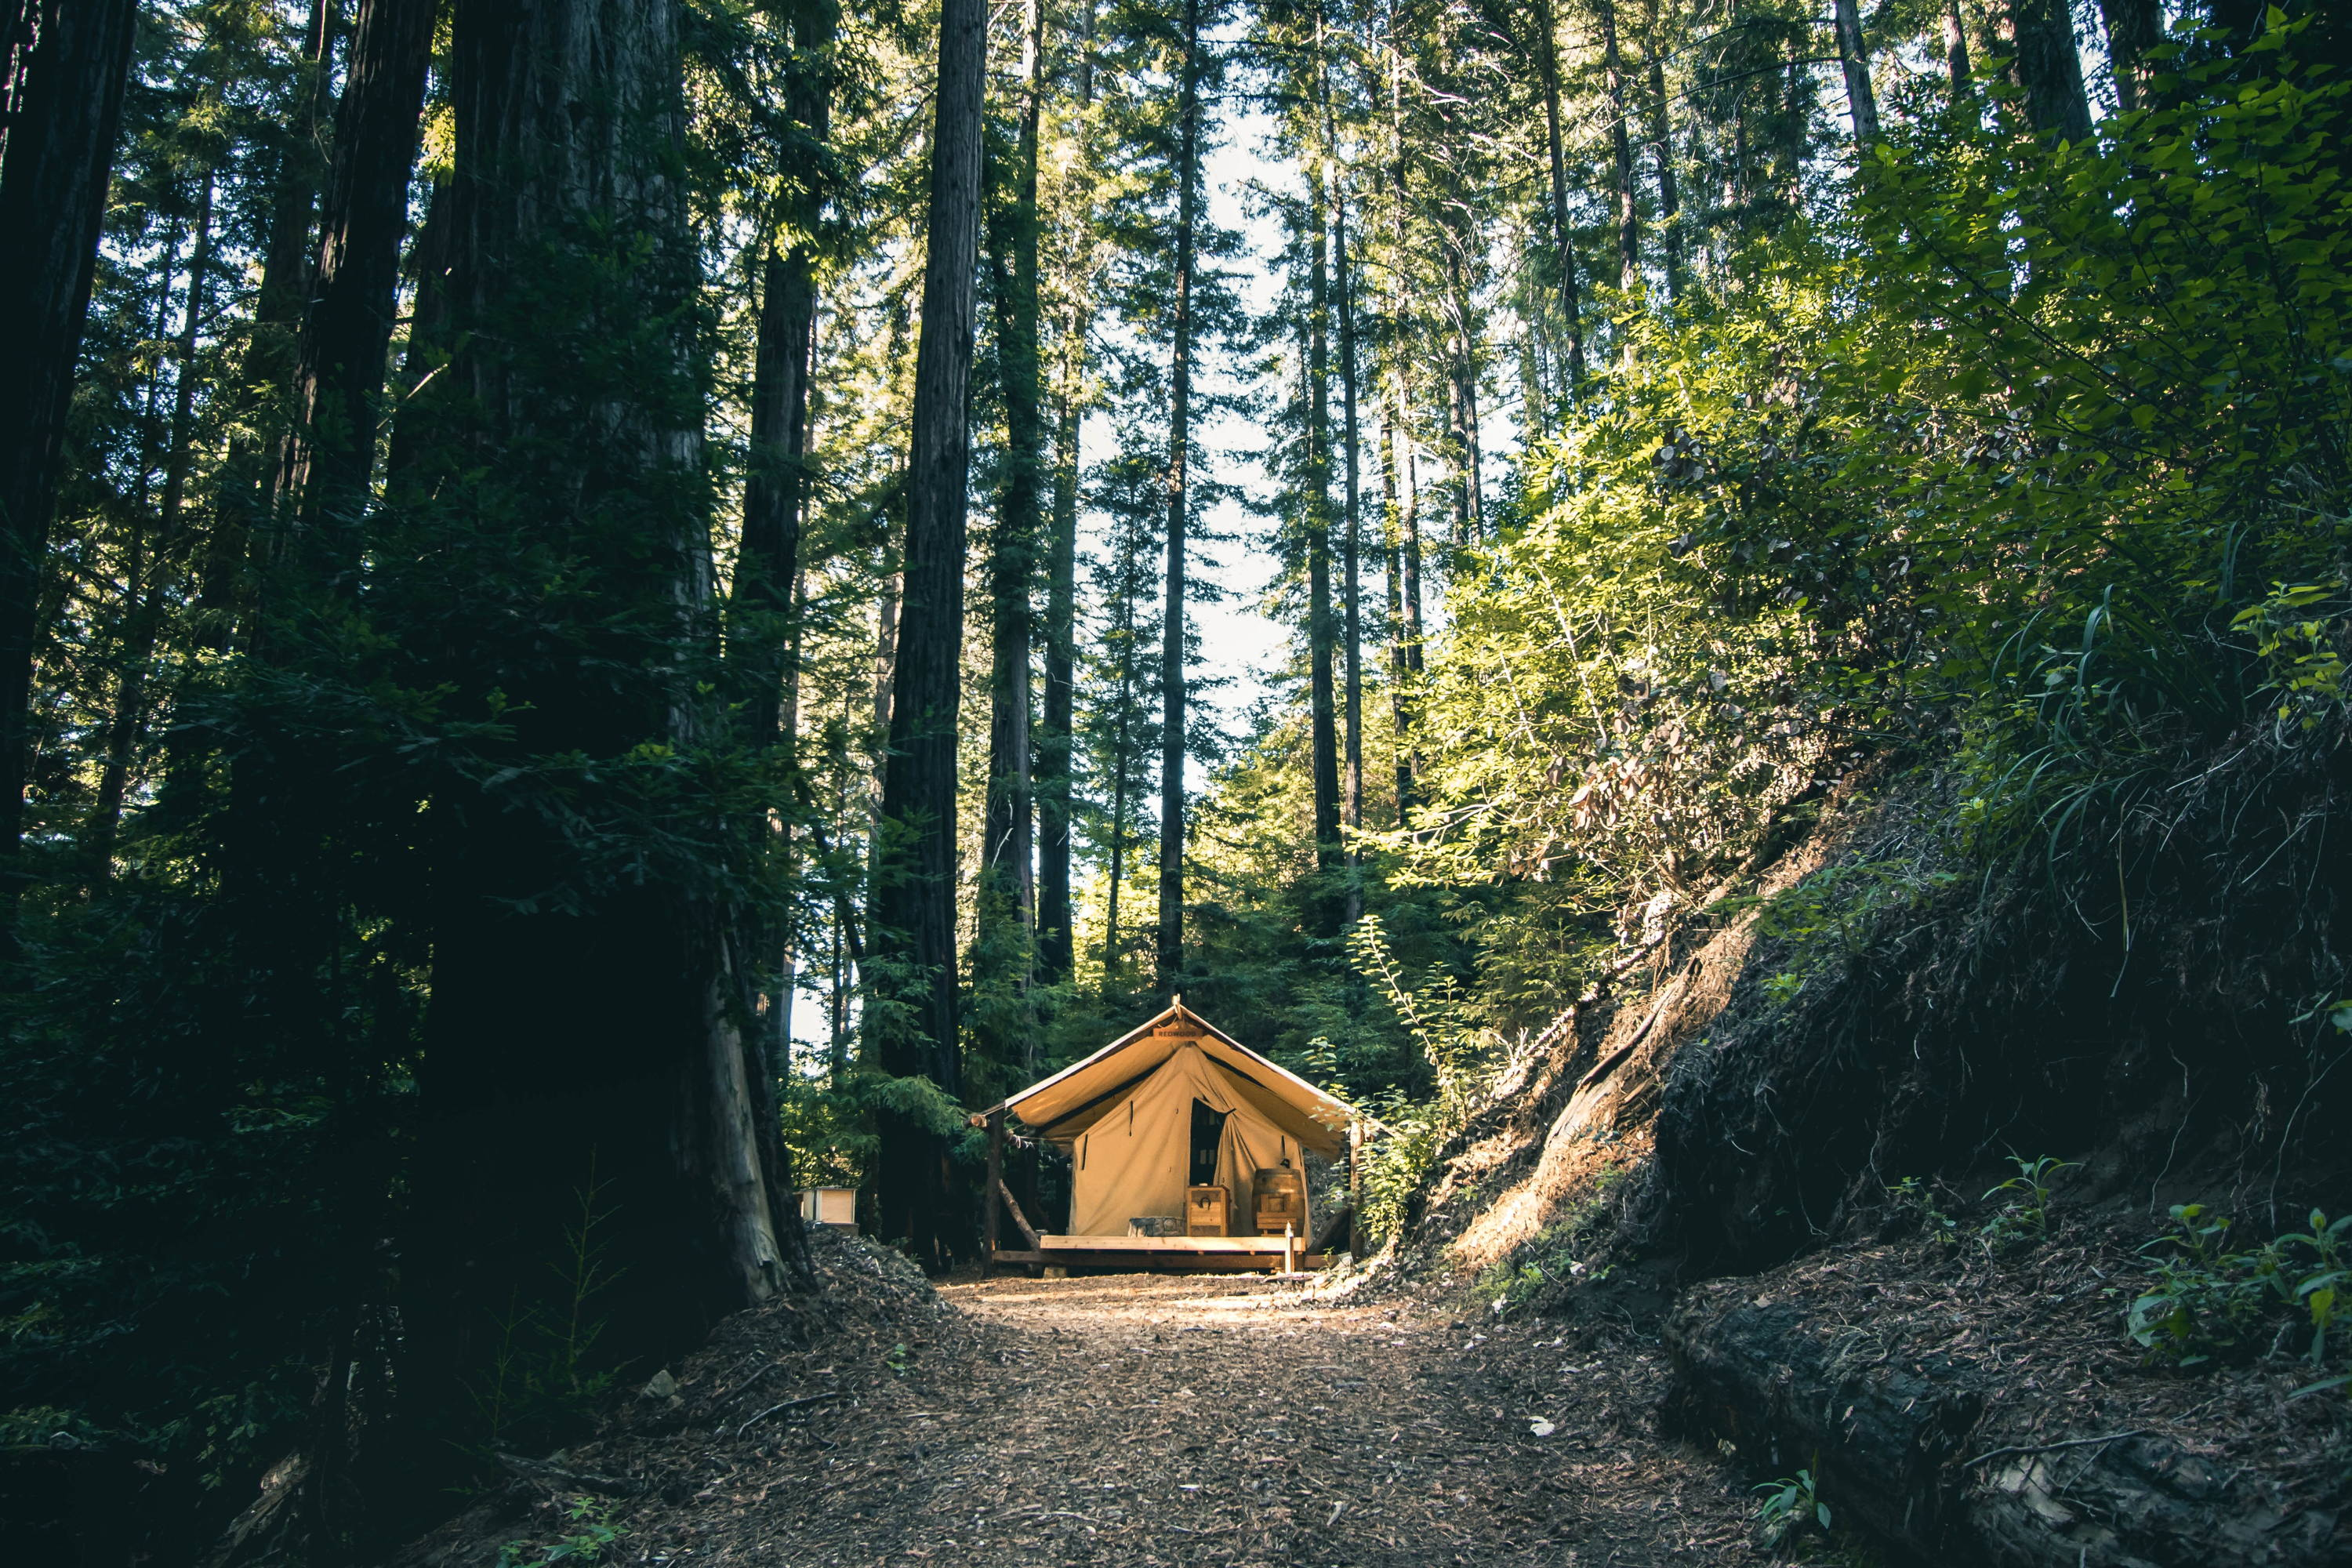 Best Parks for Backpacking Big Sur.  Hut sites isolated in the forest with hillside to the right and tall trees all around.